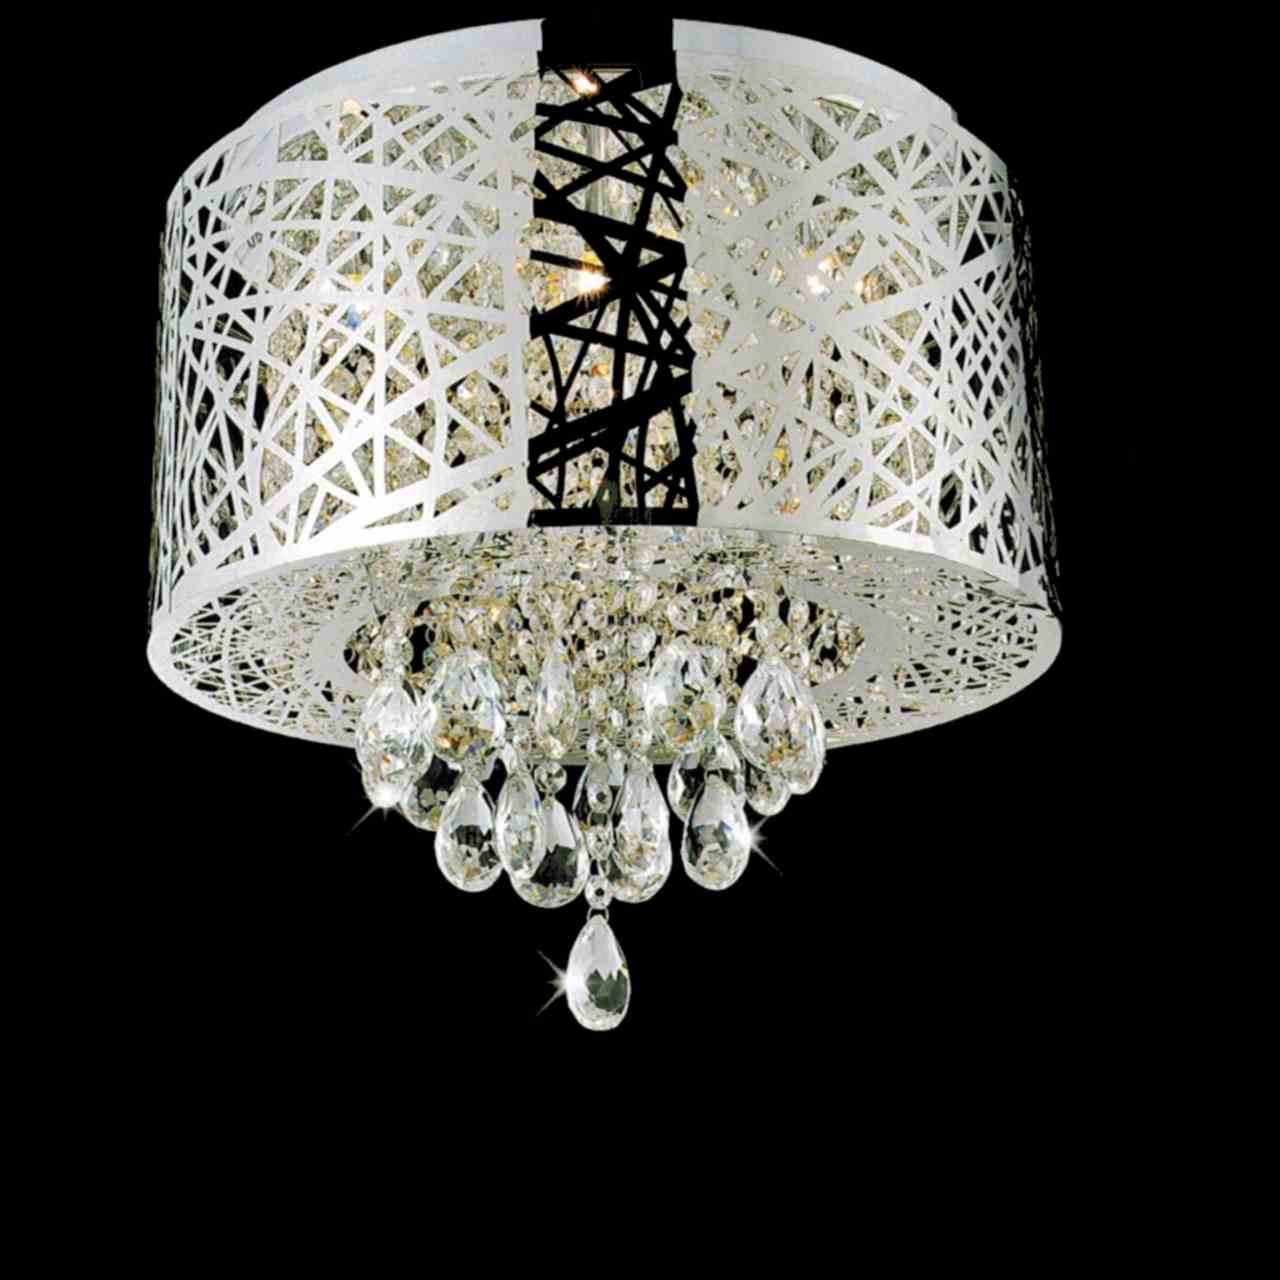 Flush Chandelier Brizzo lighting stores 16 web modern laser cut drum shade crystal picture of 16 web modern laser cut drum shade crystal round flush mount chandelier stainless audiocablefo